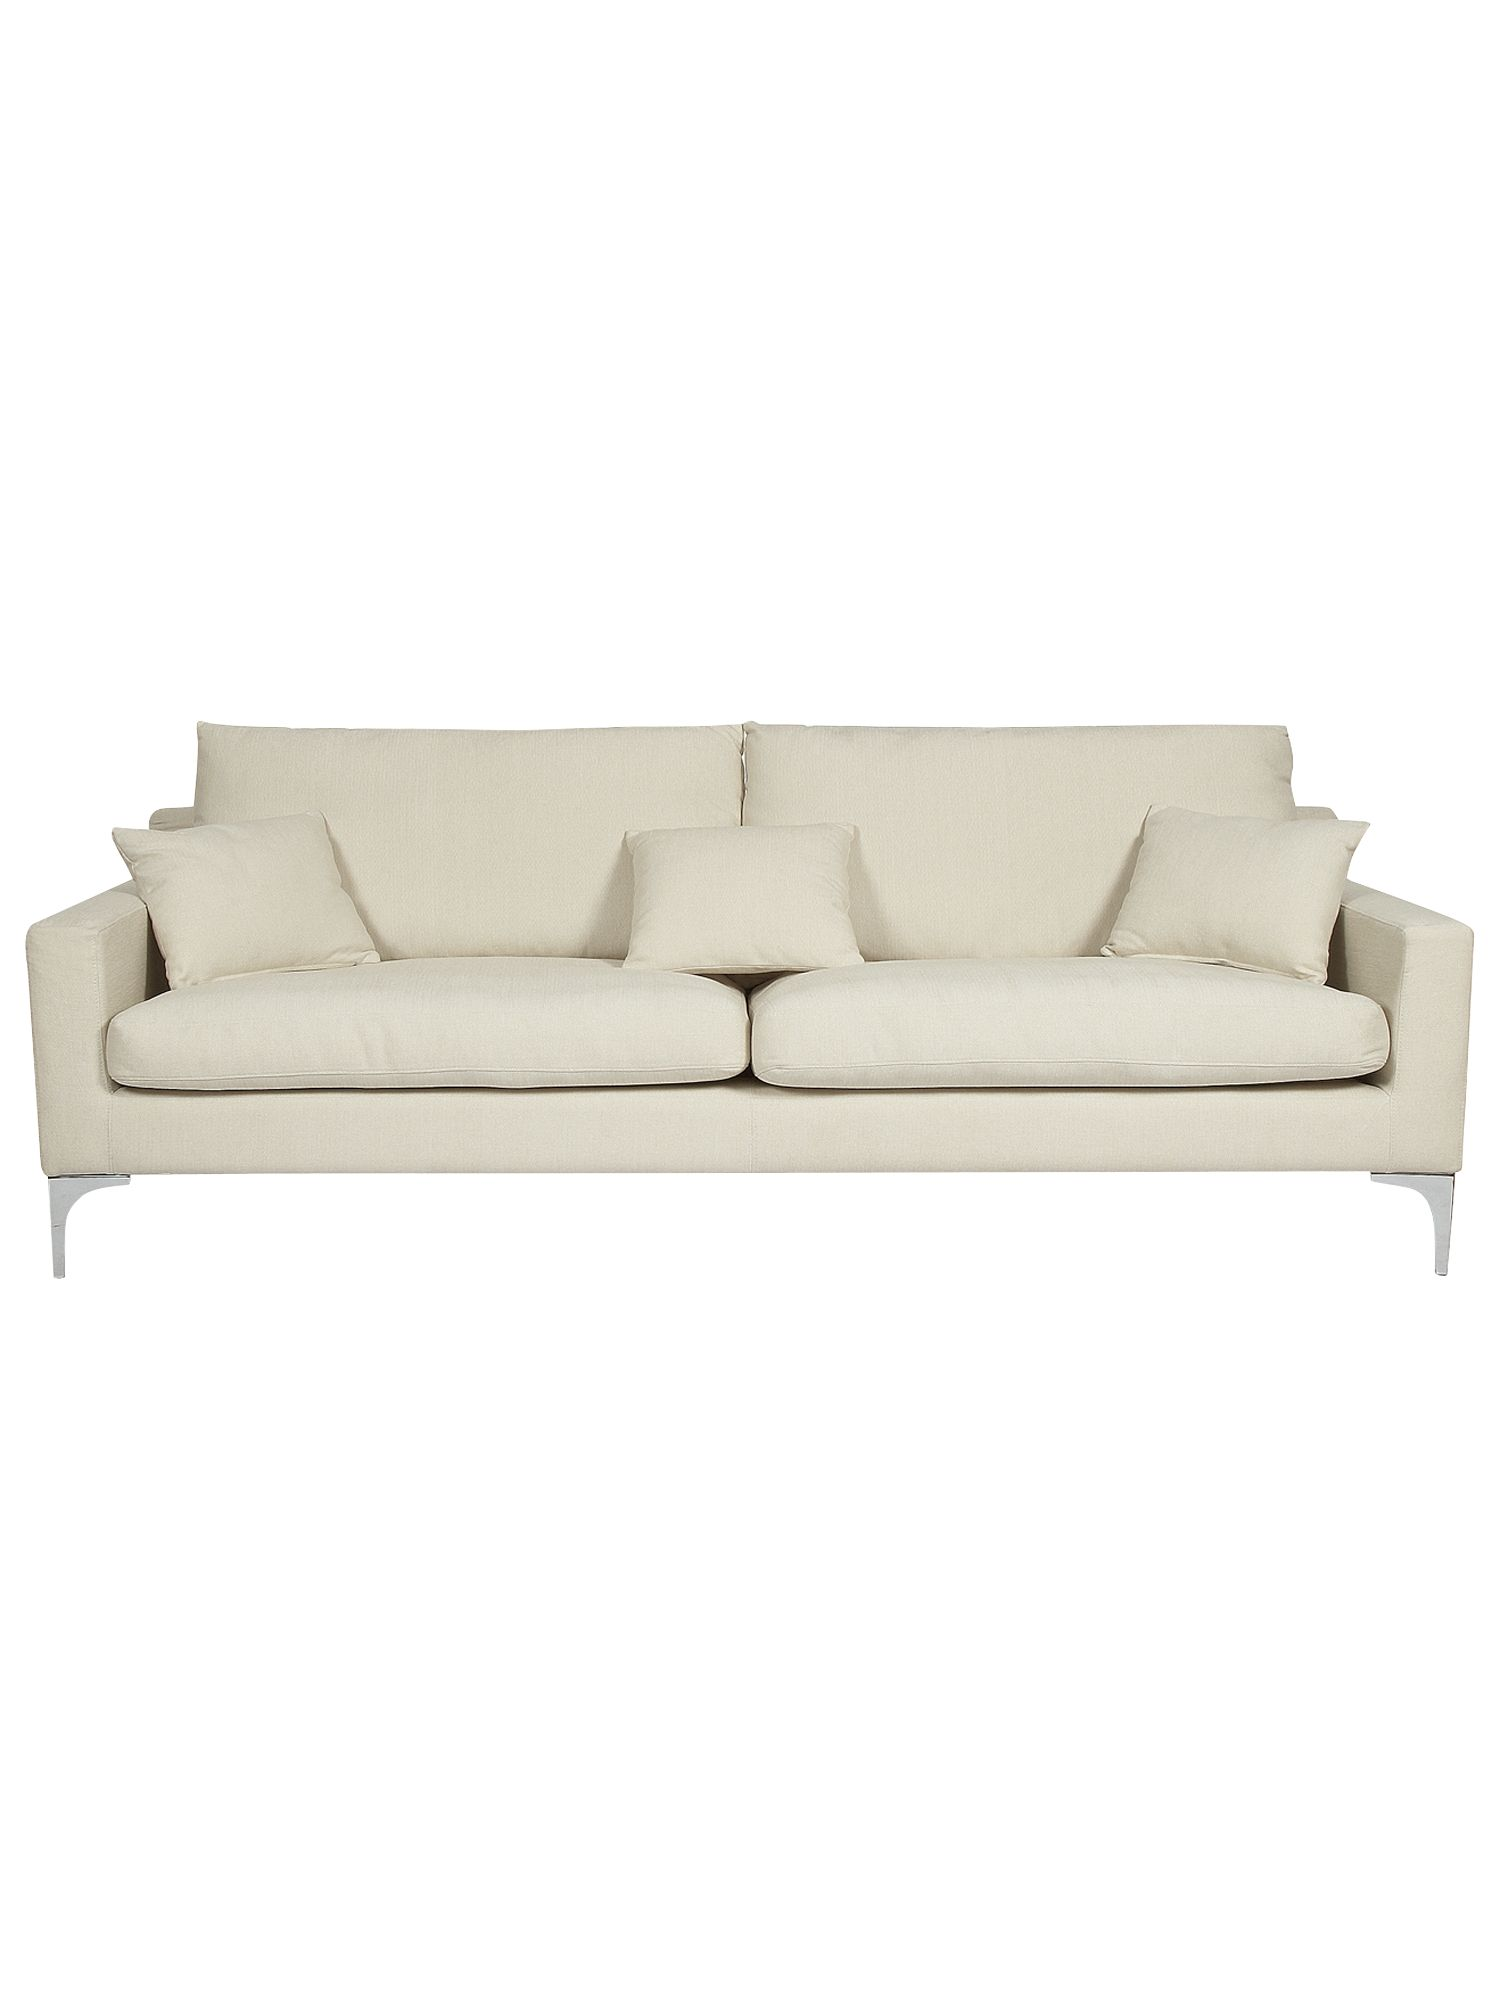 Casa Couture Marlin 3 seater sofa product image